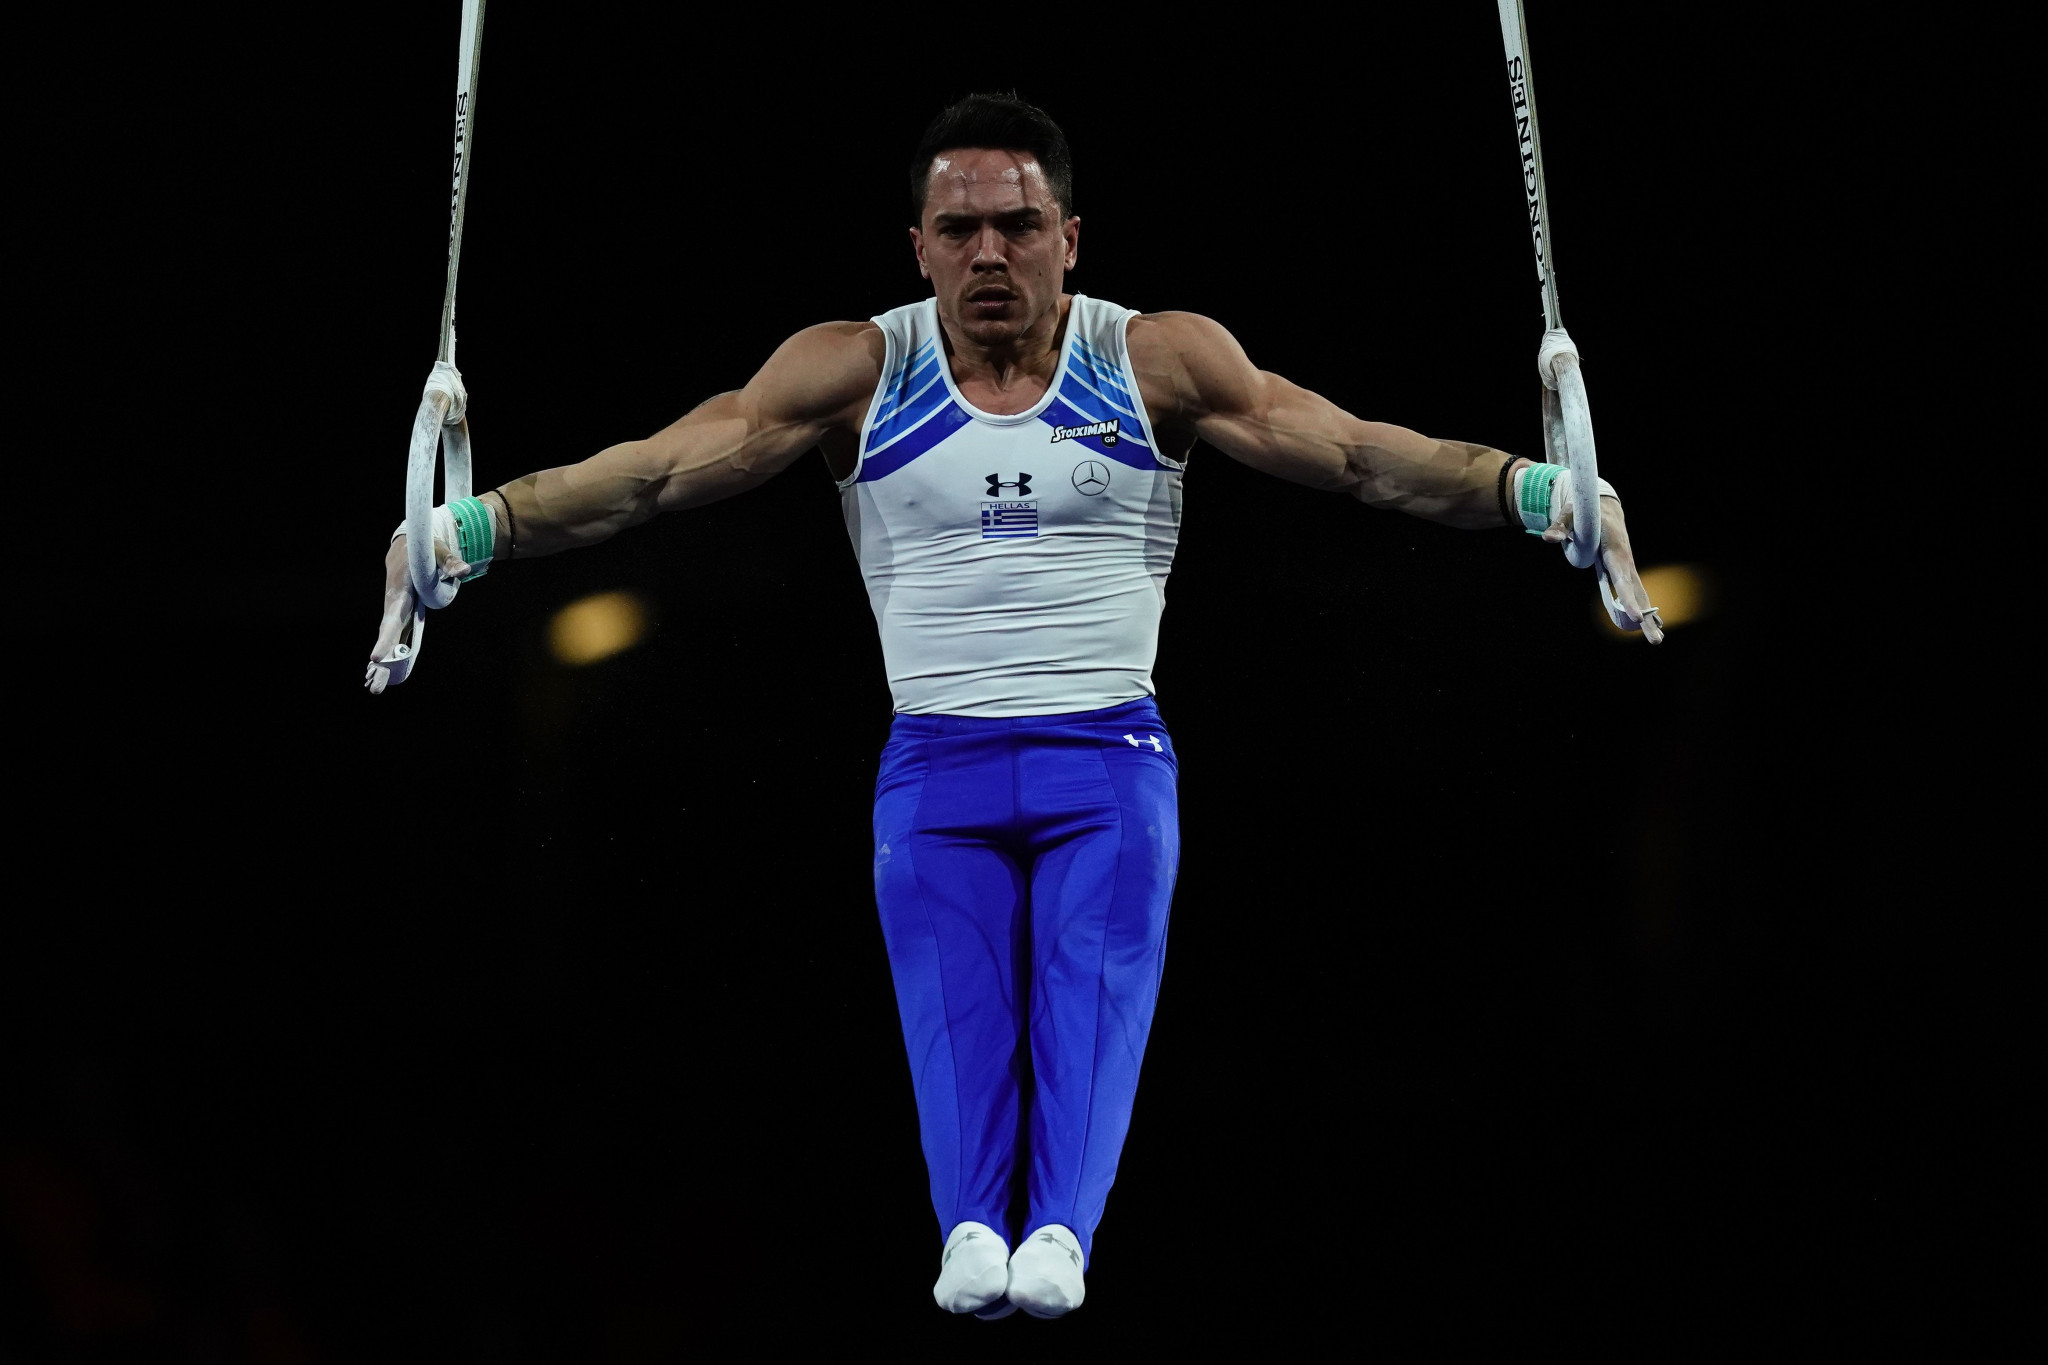 Olympic champion Petrounias tops men's rings qualification as FIG World Cup begins in Melbourne